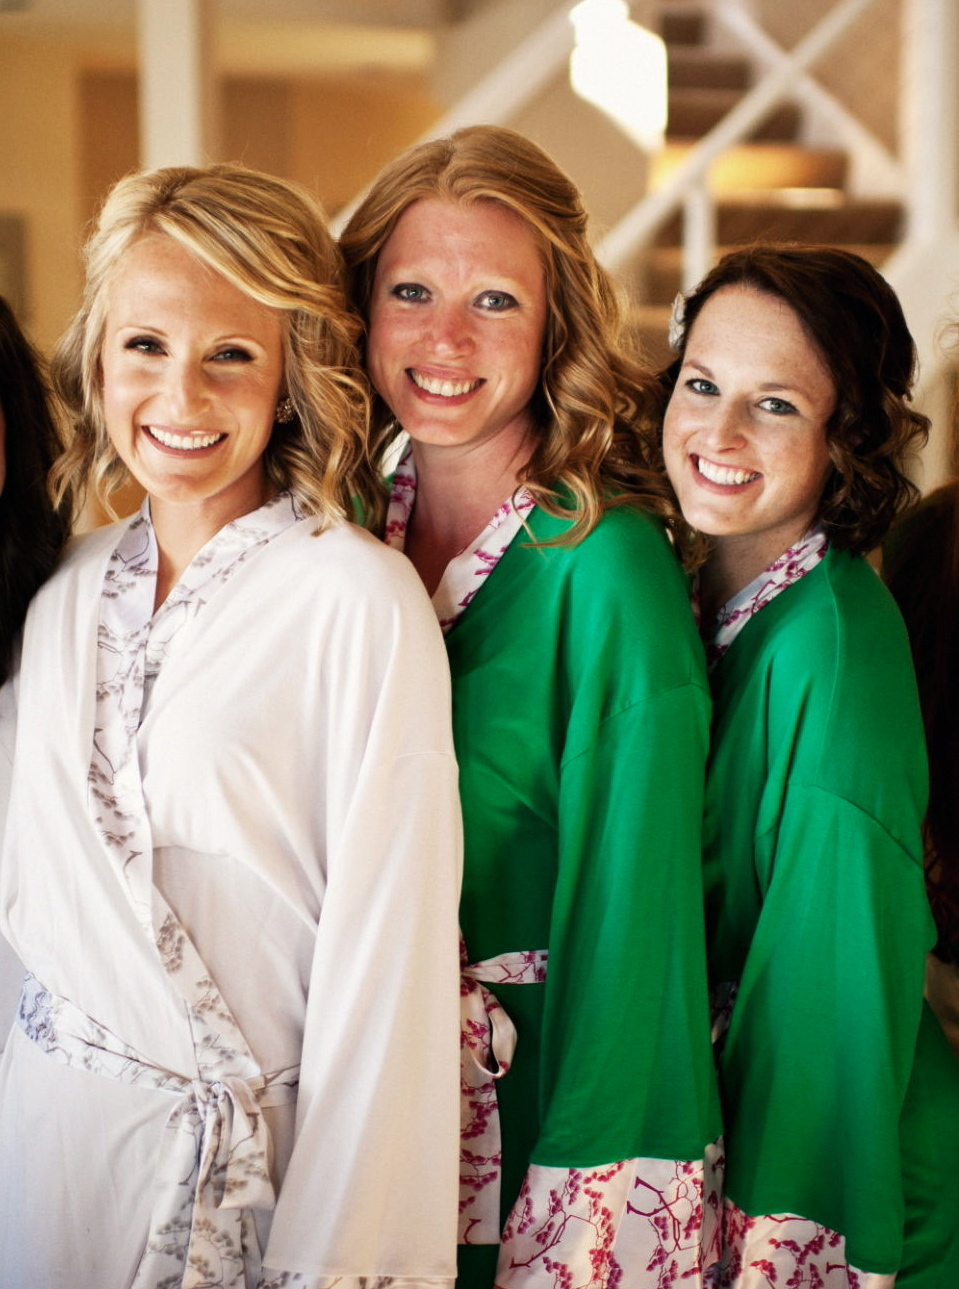 Eco-friendly-robes-for-bride-and-bridesmaids-1.full